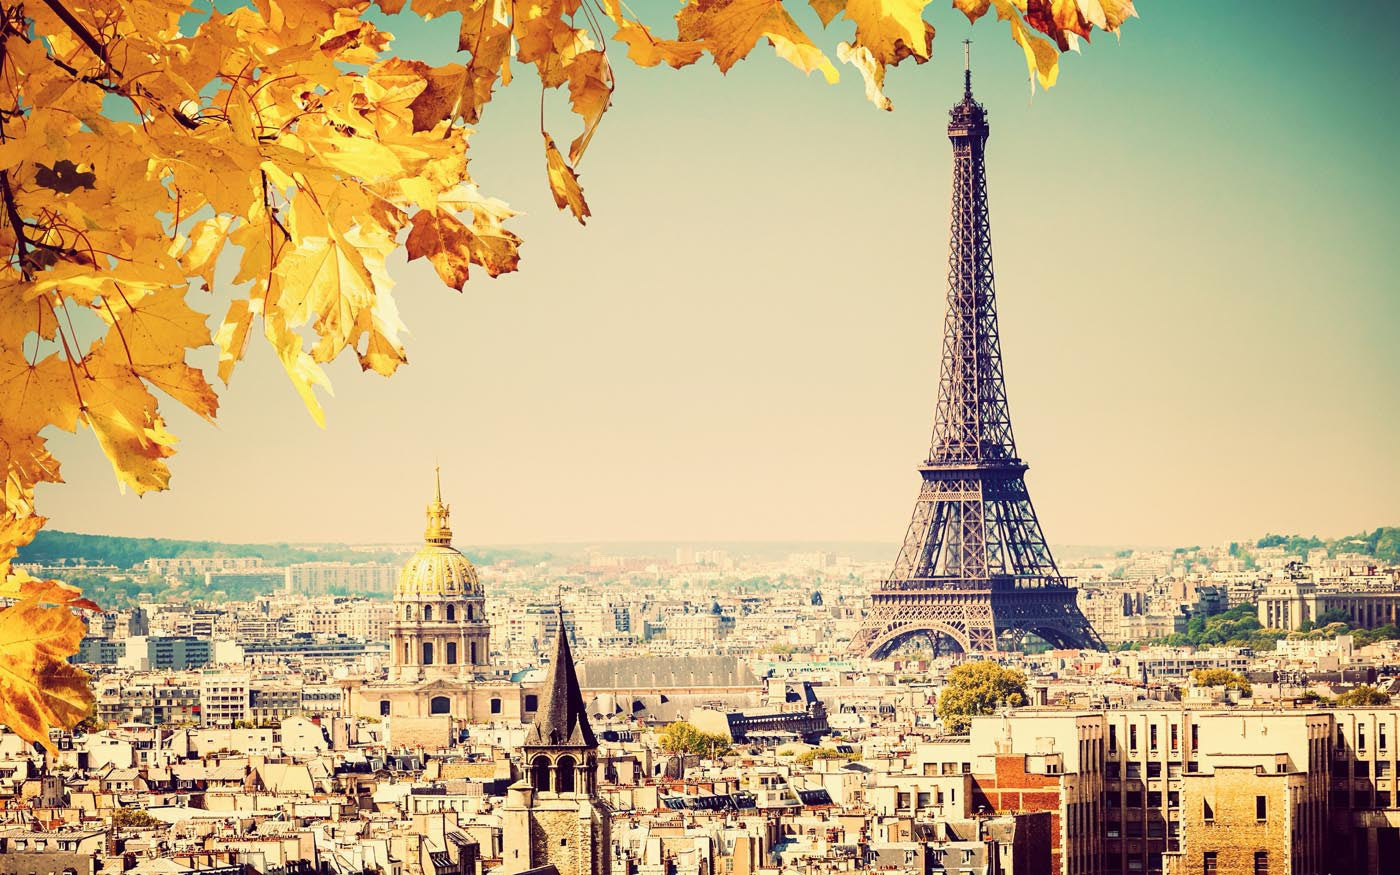 Autumn in Paris with Eiffel Tower - Art Prints by Jeffry Juel   Buy ...